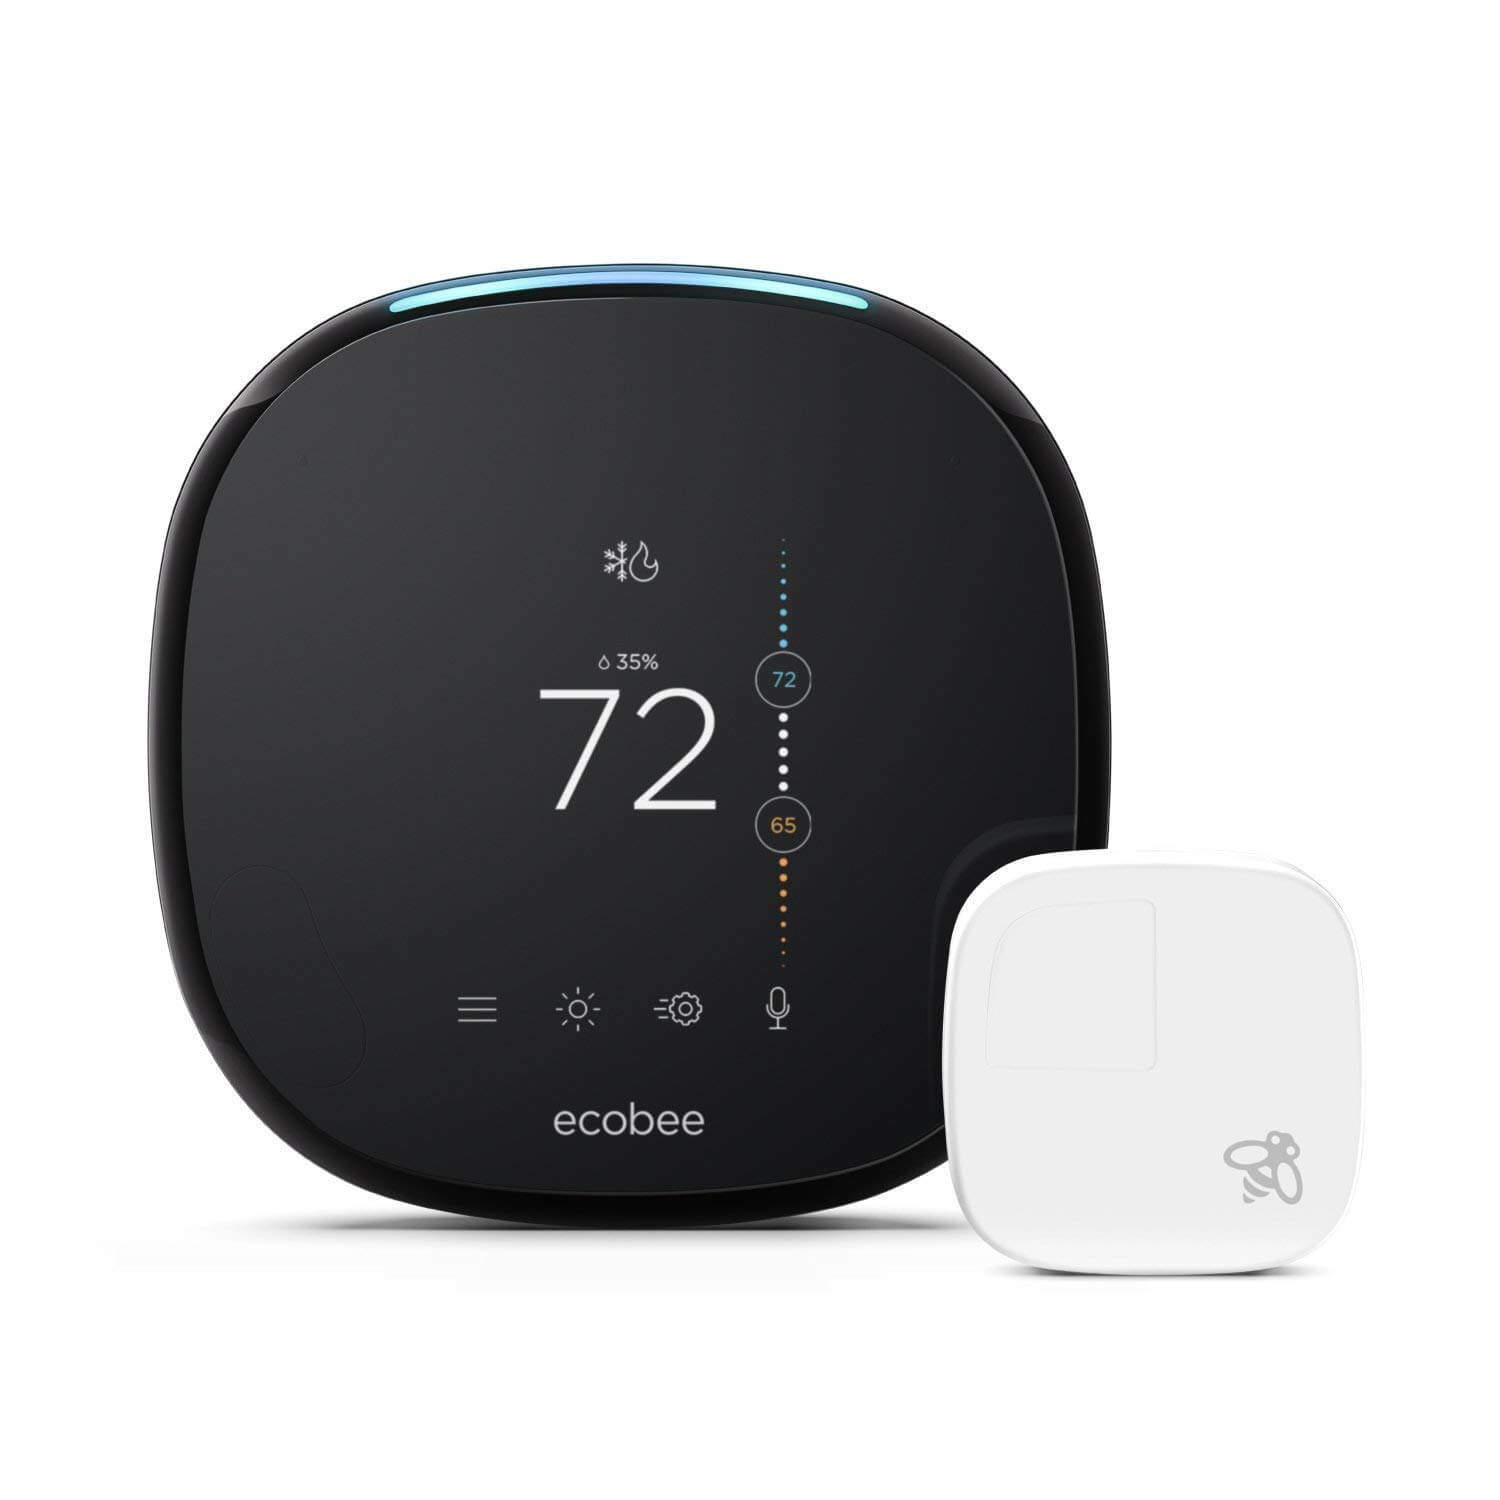 ecobee home thermostat review